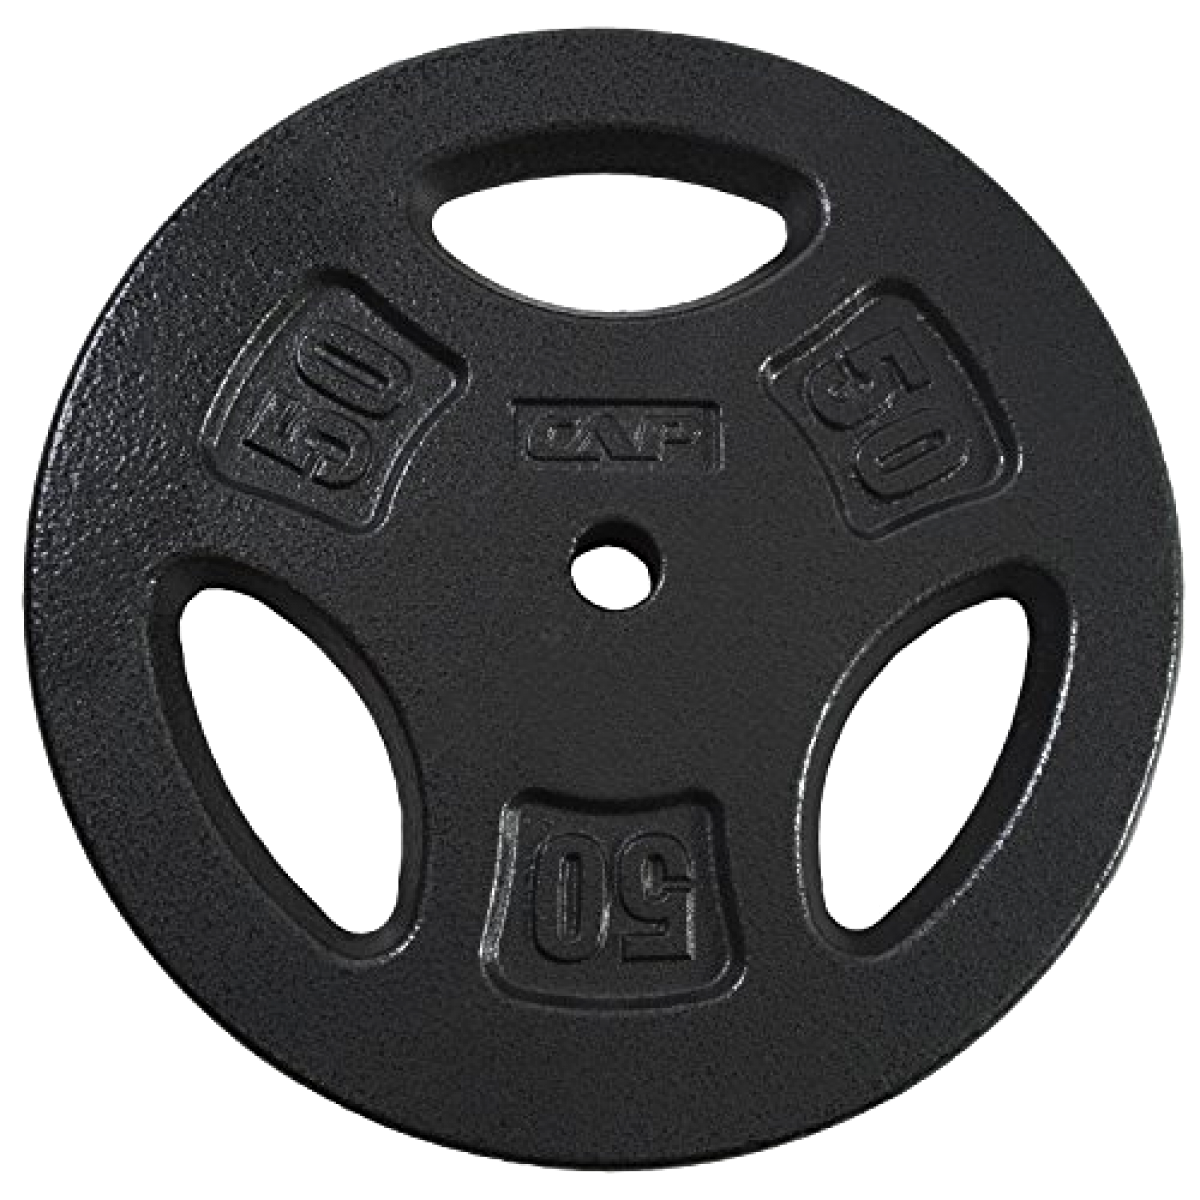 CAP Barbell Standard Grip 1 inch Weight Plate for Dumbbells Gym 7.5 10 25 50 lb